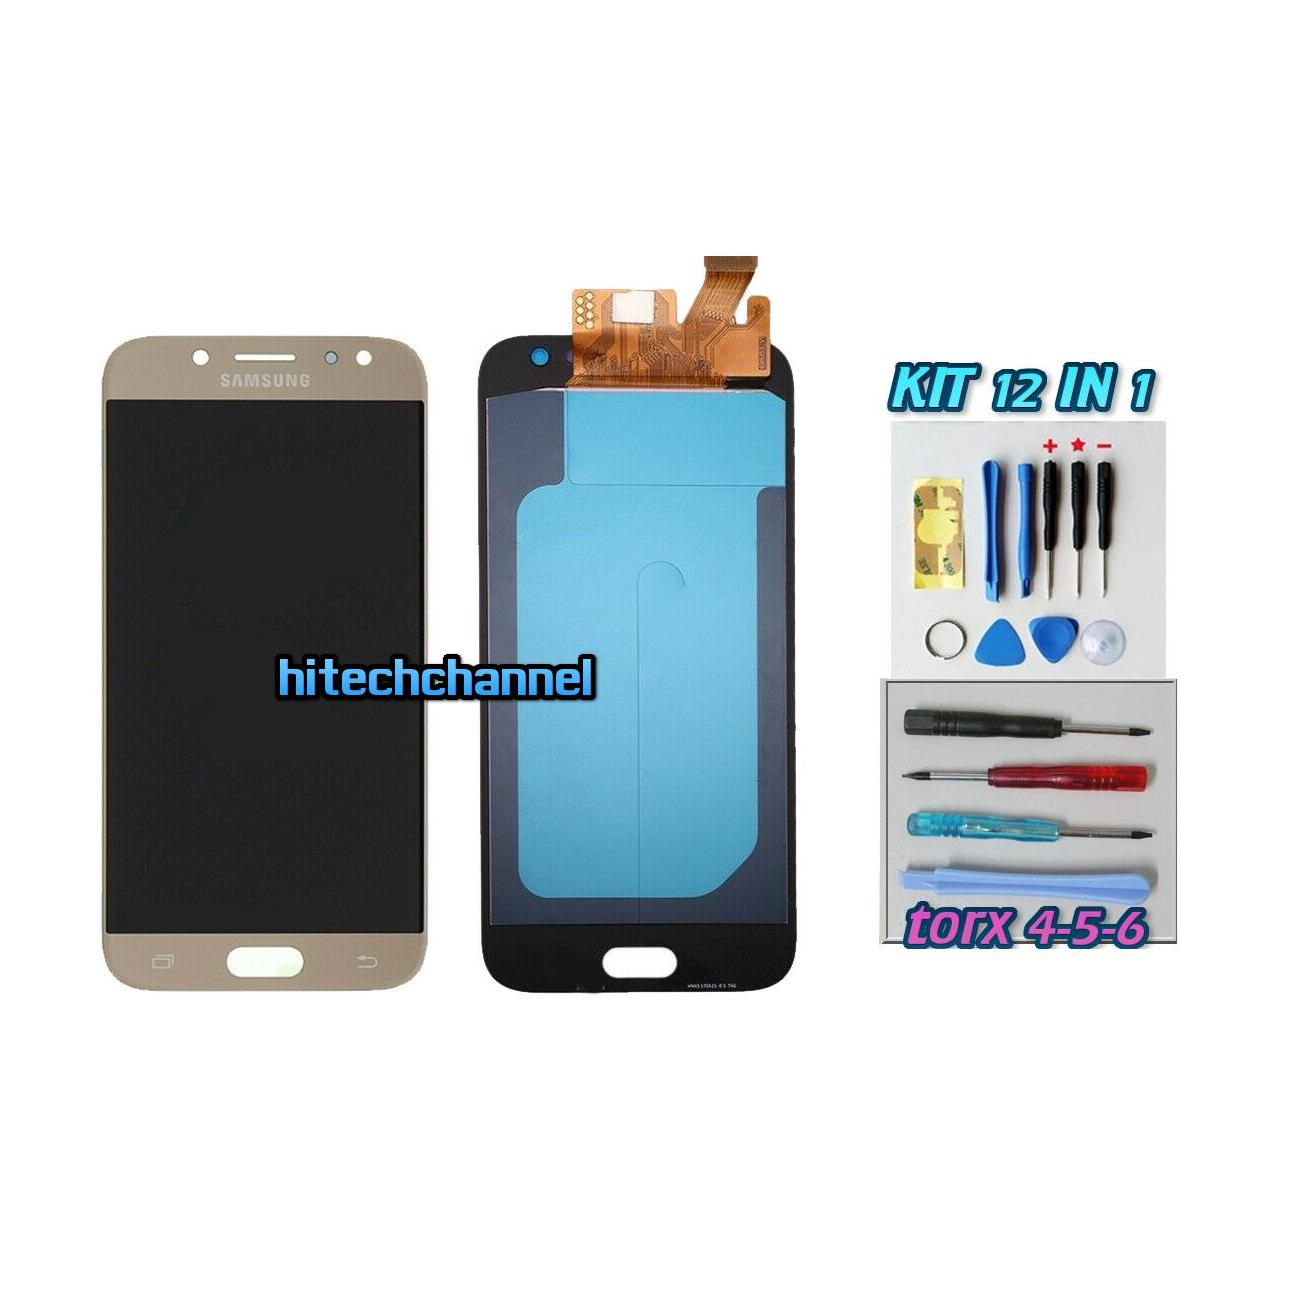 TOUCH SCREEN LCD DISPLAY ORO GOLD Samsung Galaxy J5 2017 J530F+ kit 9 in 1 biadesivo e colla b7000